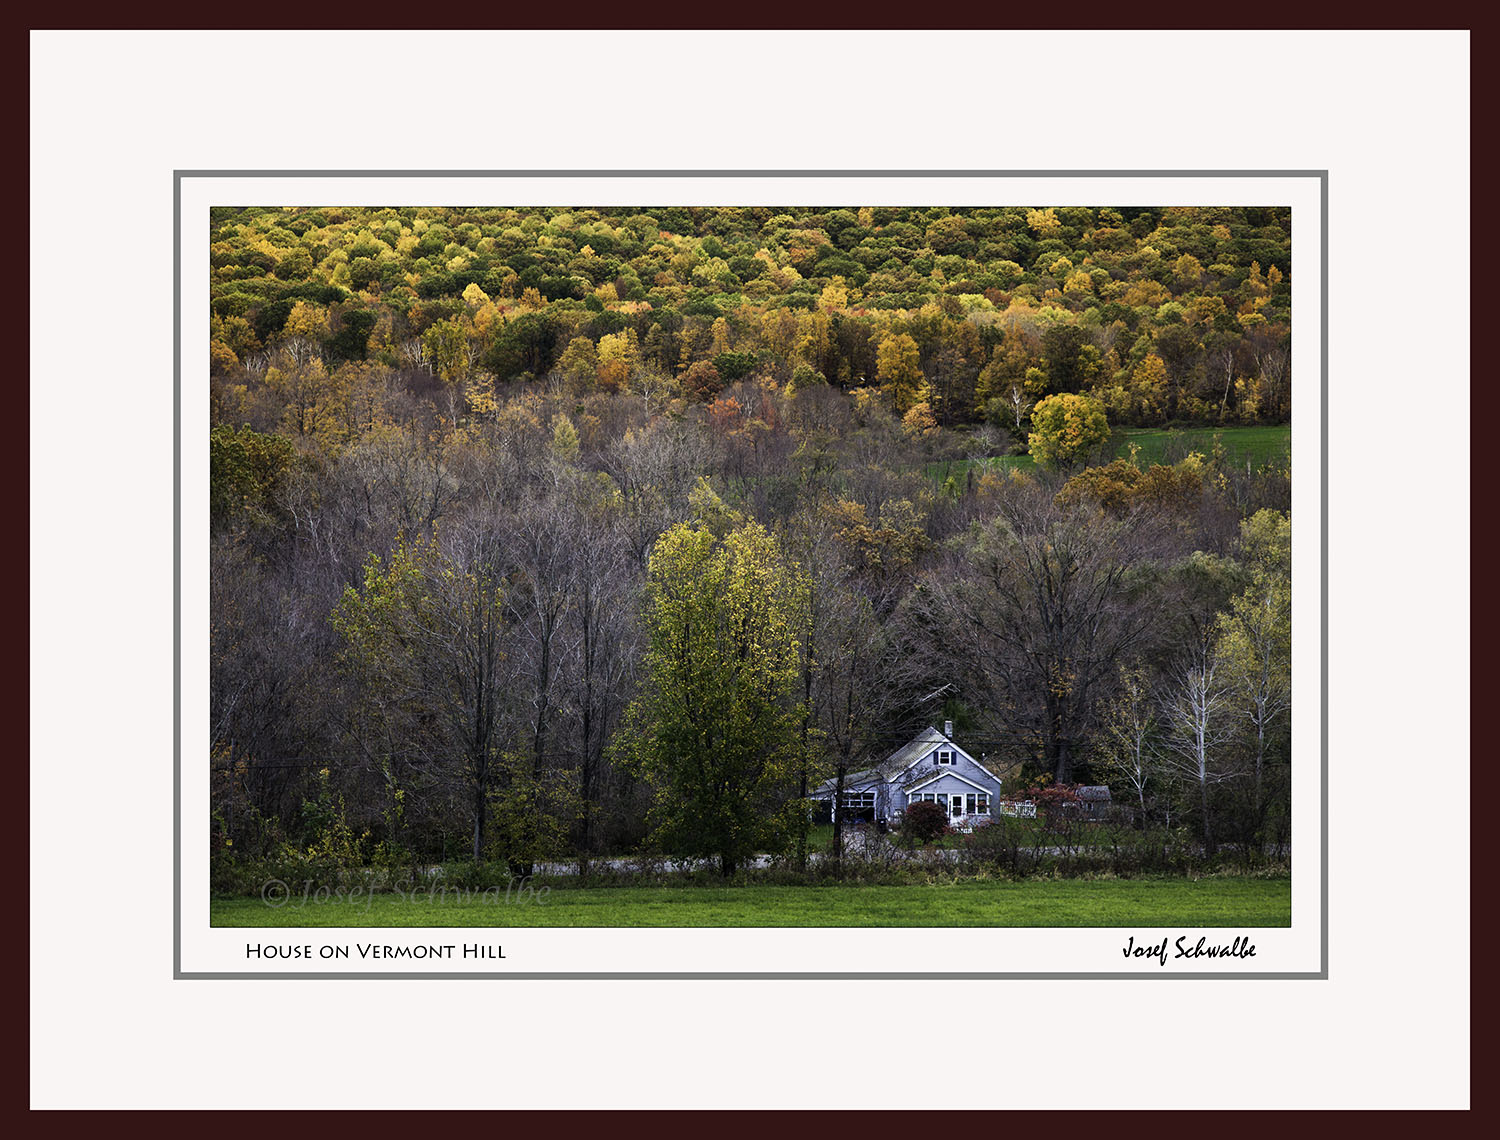 House on Vermont Hill